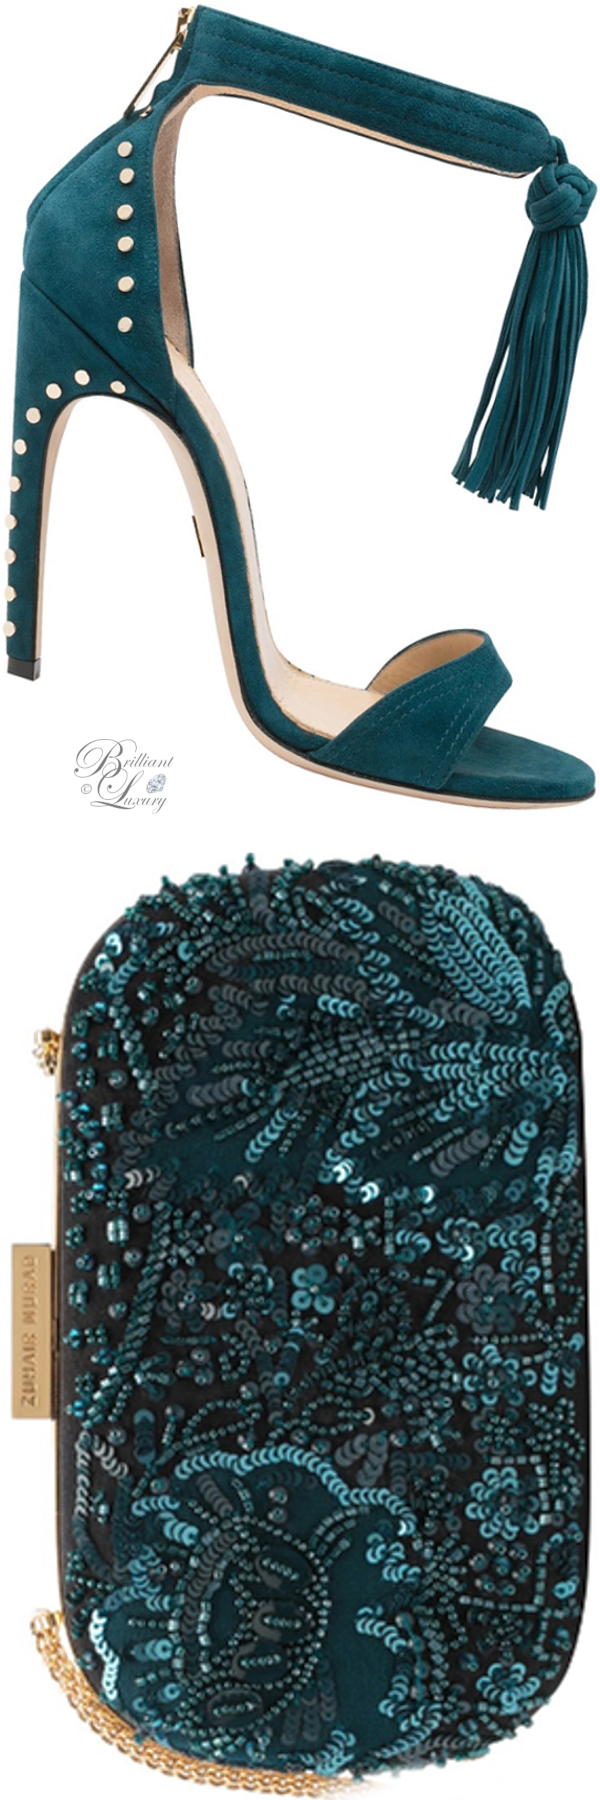 Zuhair Murad studded sandal and embroidered clutch in celadon blue